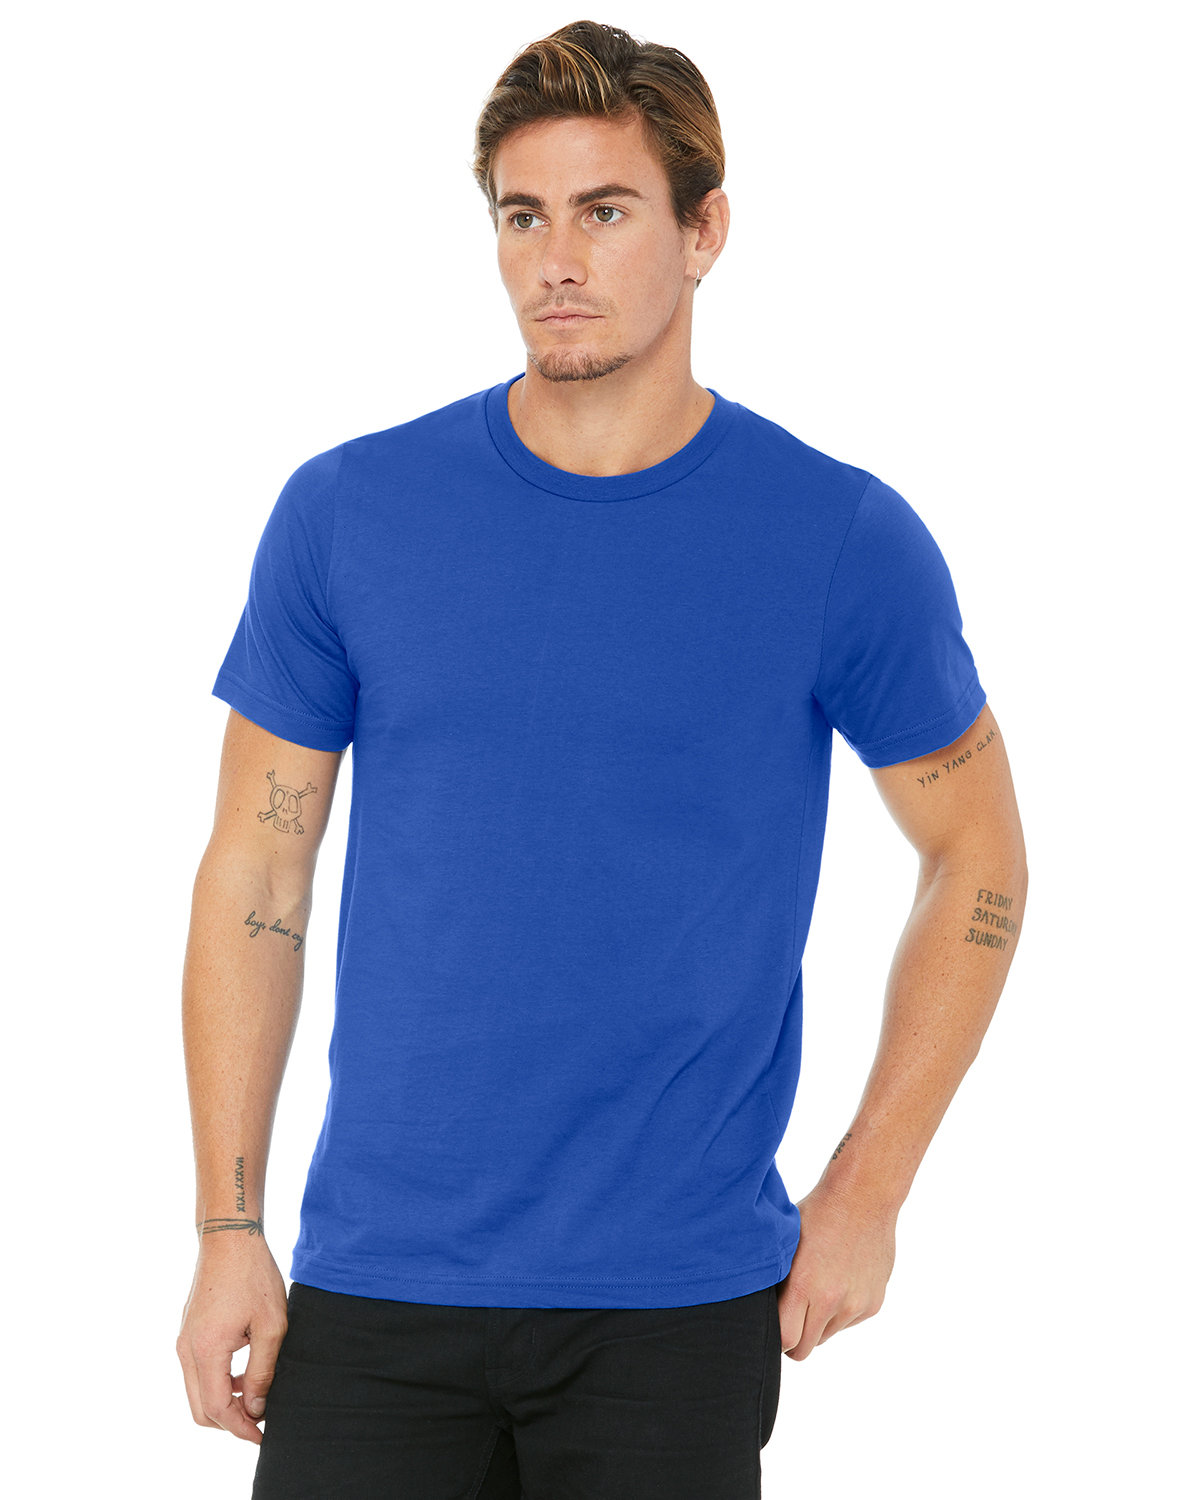 Bella + Canvas Unisex Made In The USA Jersey T-Shirt TRUE ROYAL